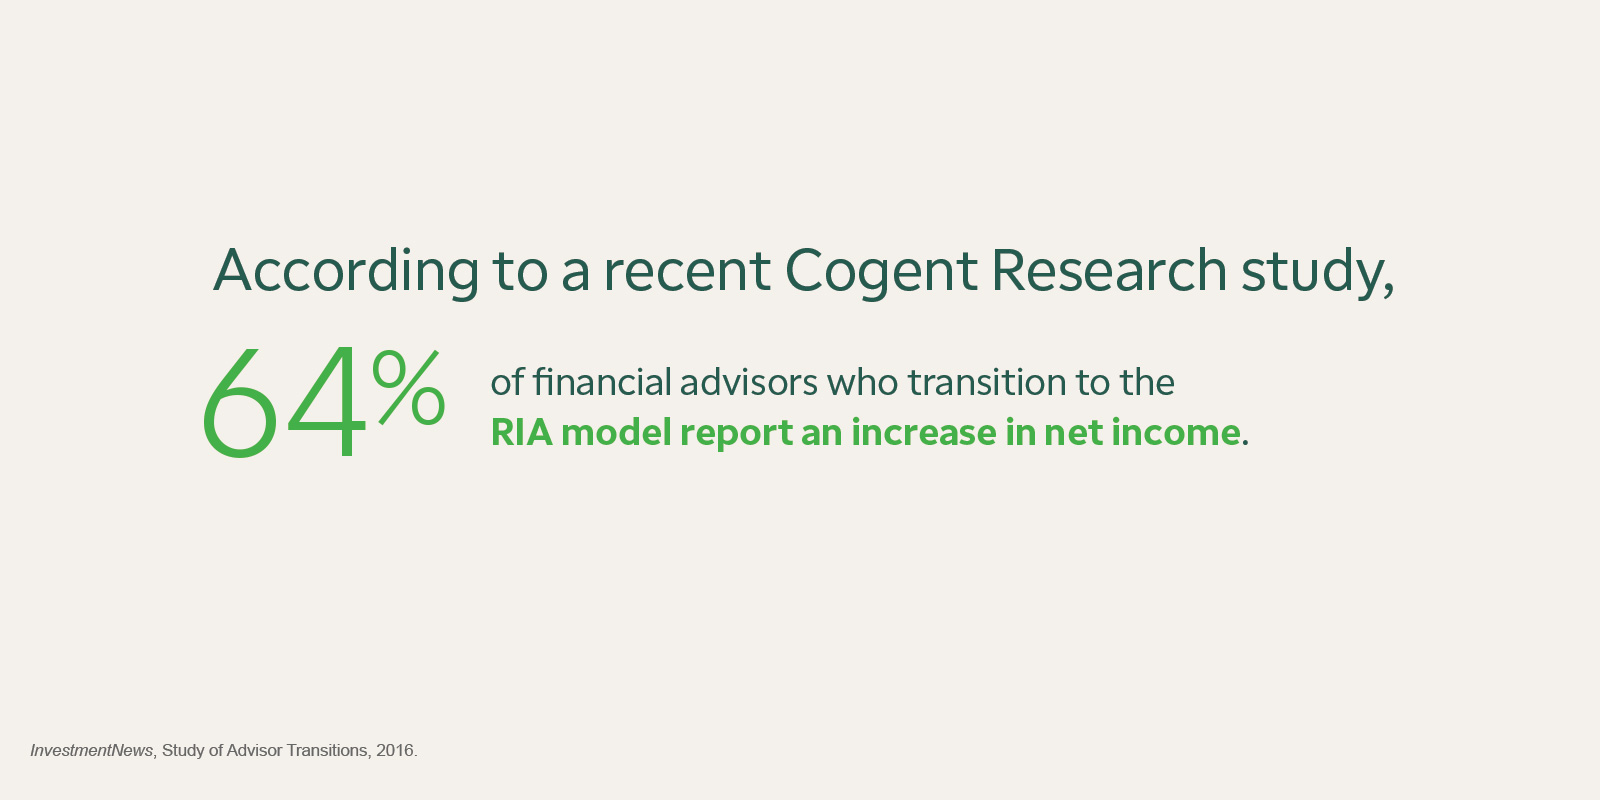 According to a recent Cogent Research study, 64% of financial advisors who transition to the RIA model report an increase in net income. Source: InvestmentNews, Study of Advisor Transitions, 2016.